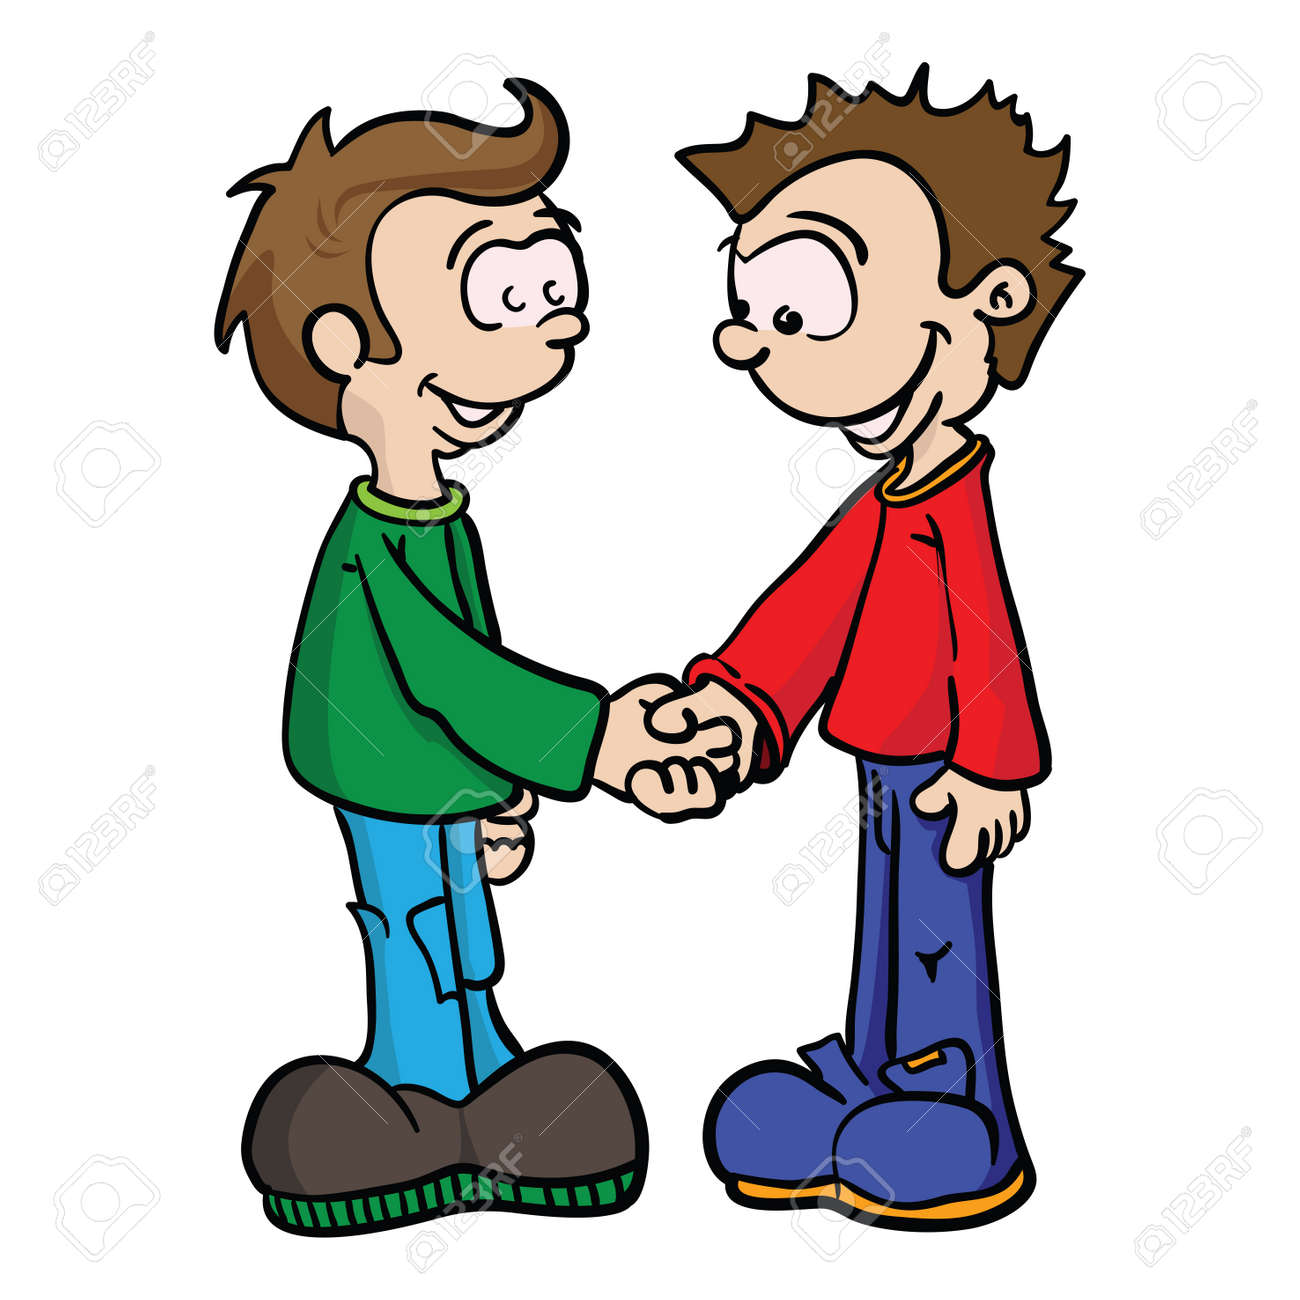 cartoon illustration of two boys shaking hands royalty free cliparts rh 123rf com shaking hands cartoon images shake hands cartoon